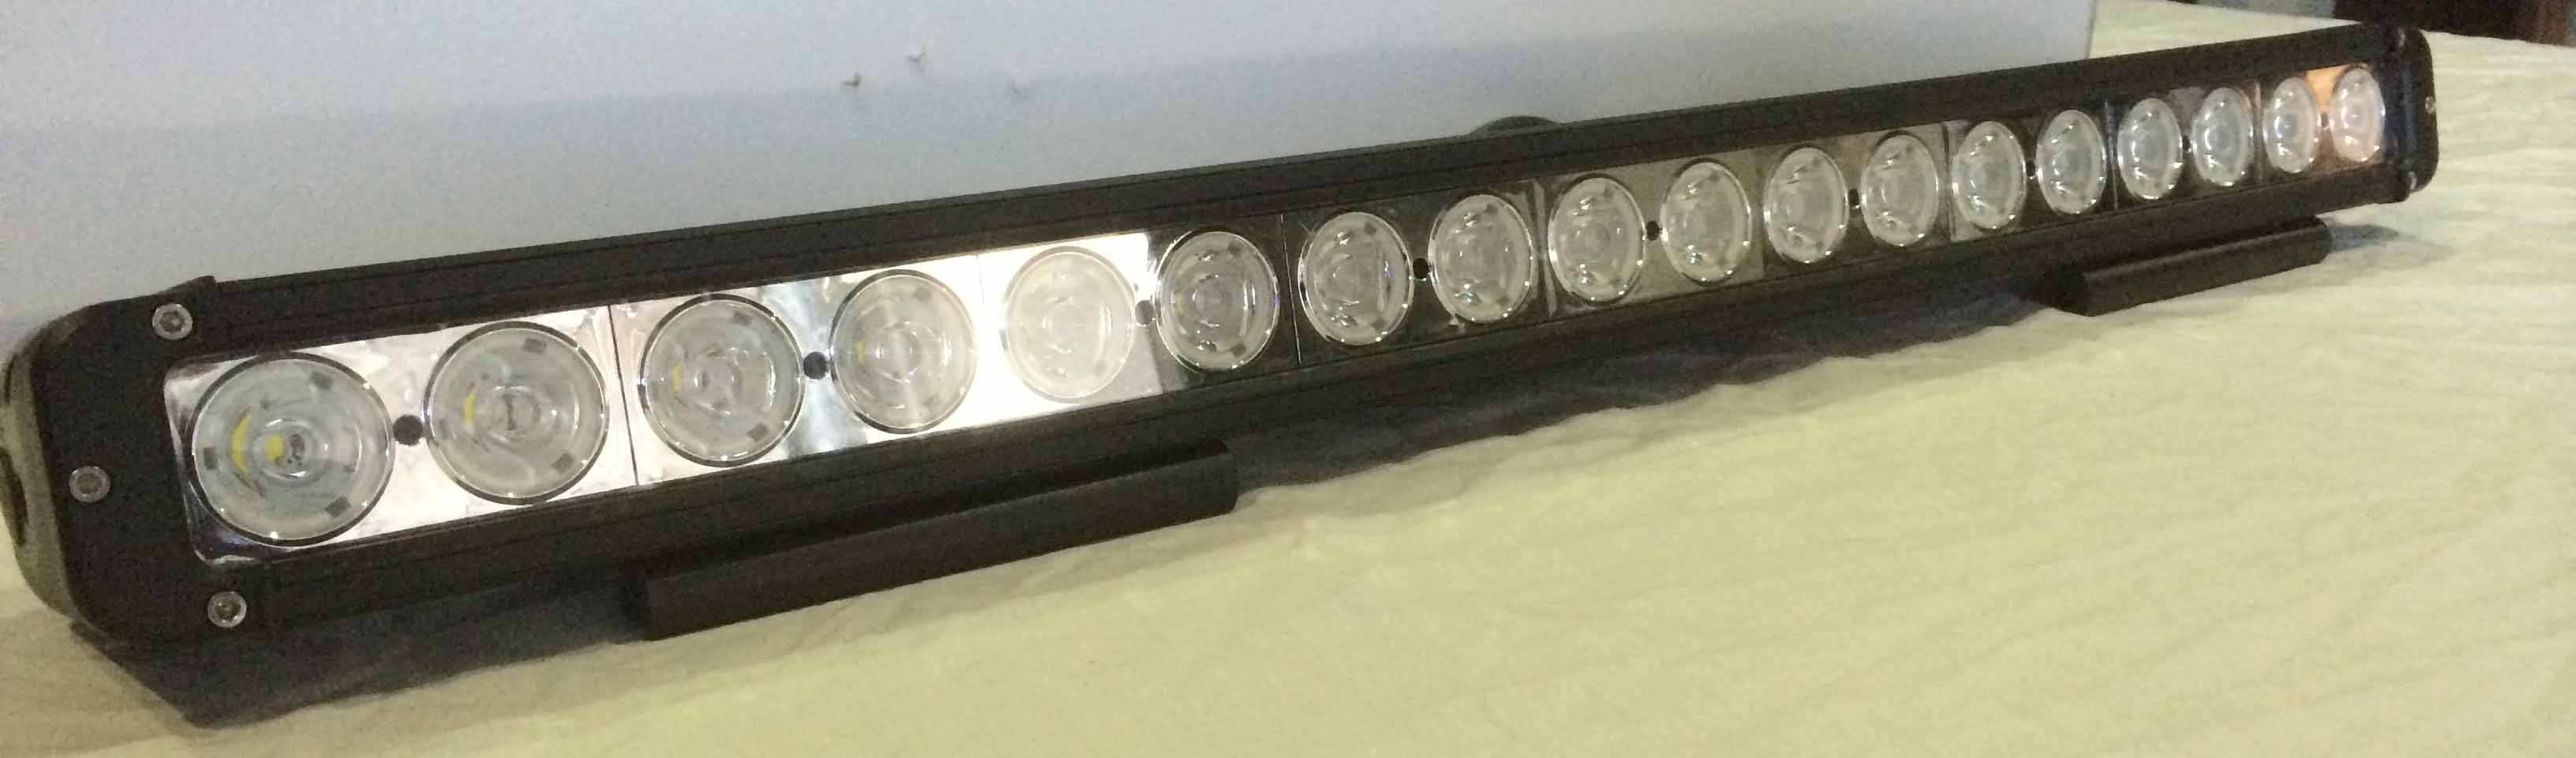 180 watt Cree LED Single Row Light Bar